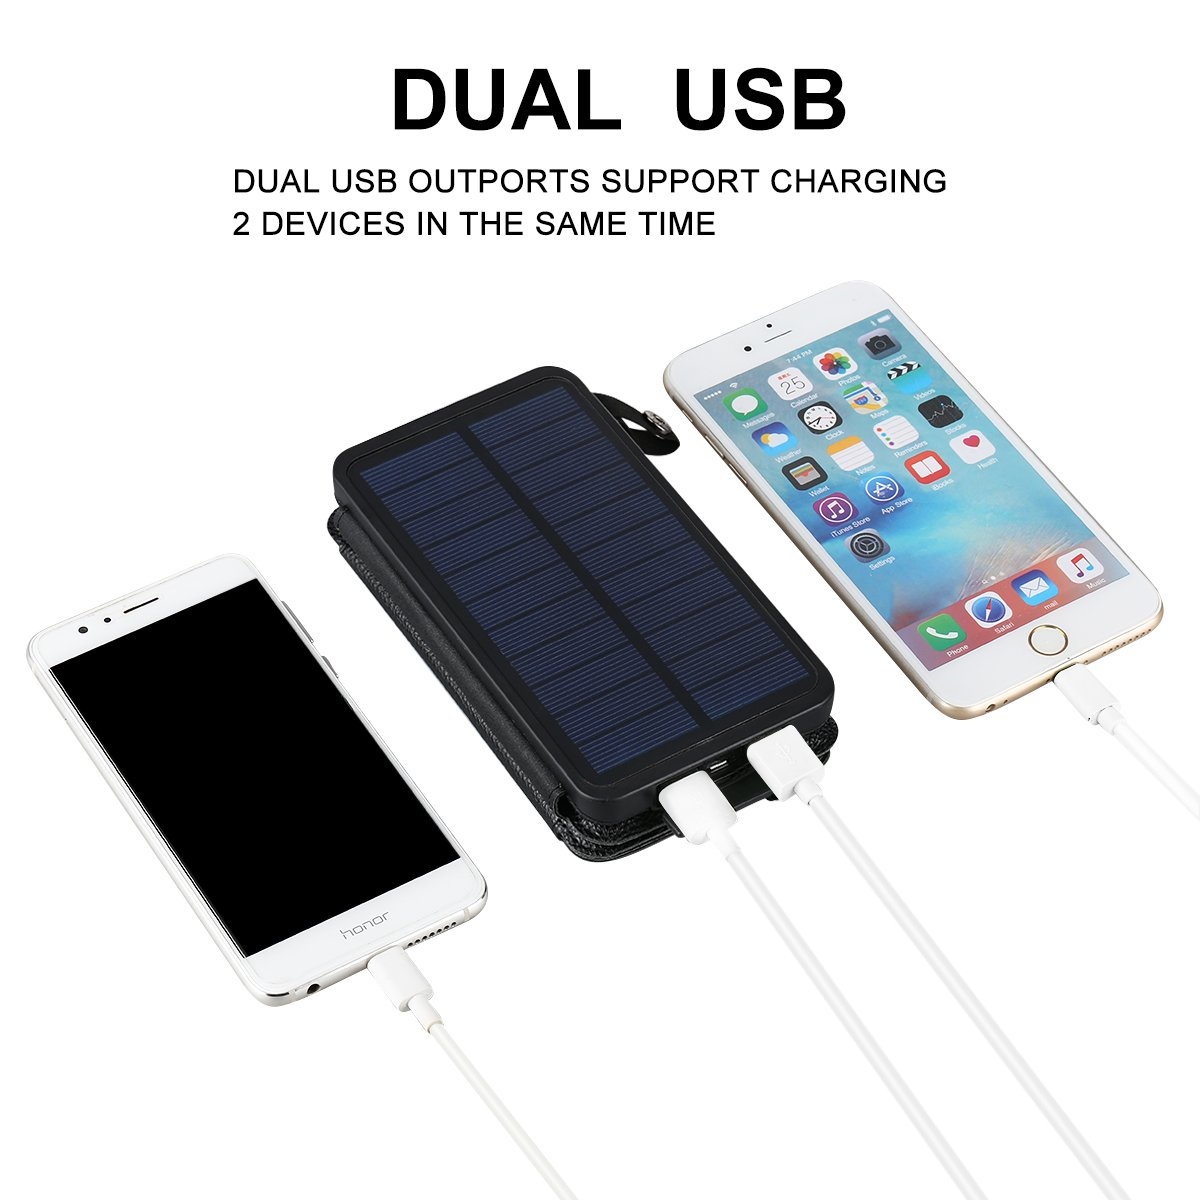 FLOUREON 10,000mAh Mobile Phone Power Bank 1+3PCS Solar Panel Chargers with Solar charging Auxiliary Function Dual USB 1.0A/2.1A Portable Mobile External Battery for iPhone, iPad, Samsung Galaxy and A